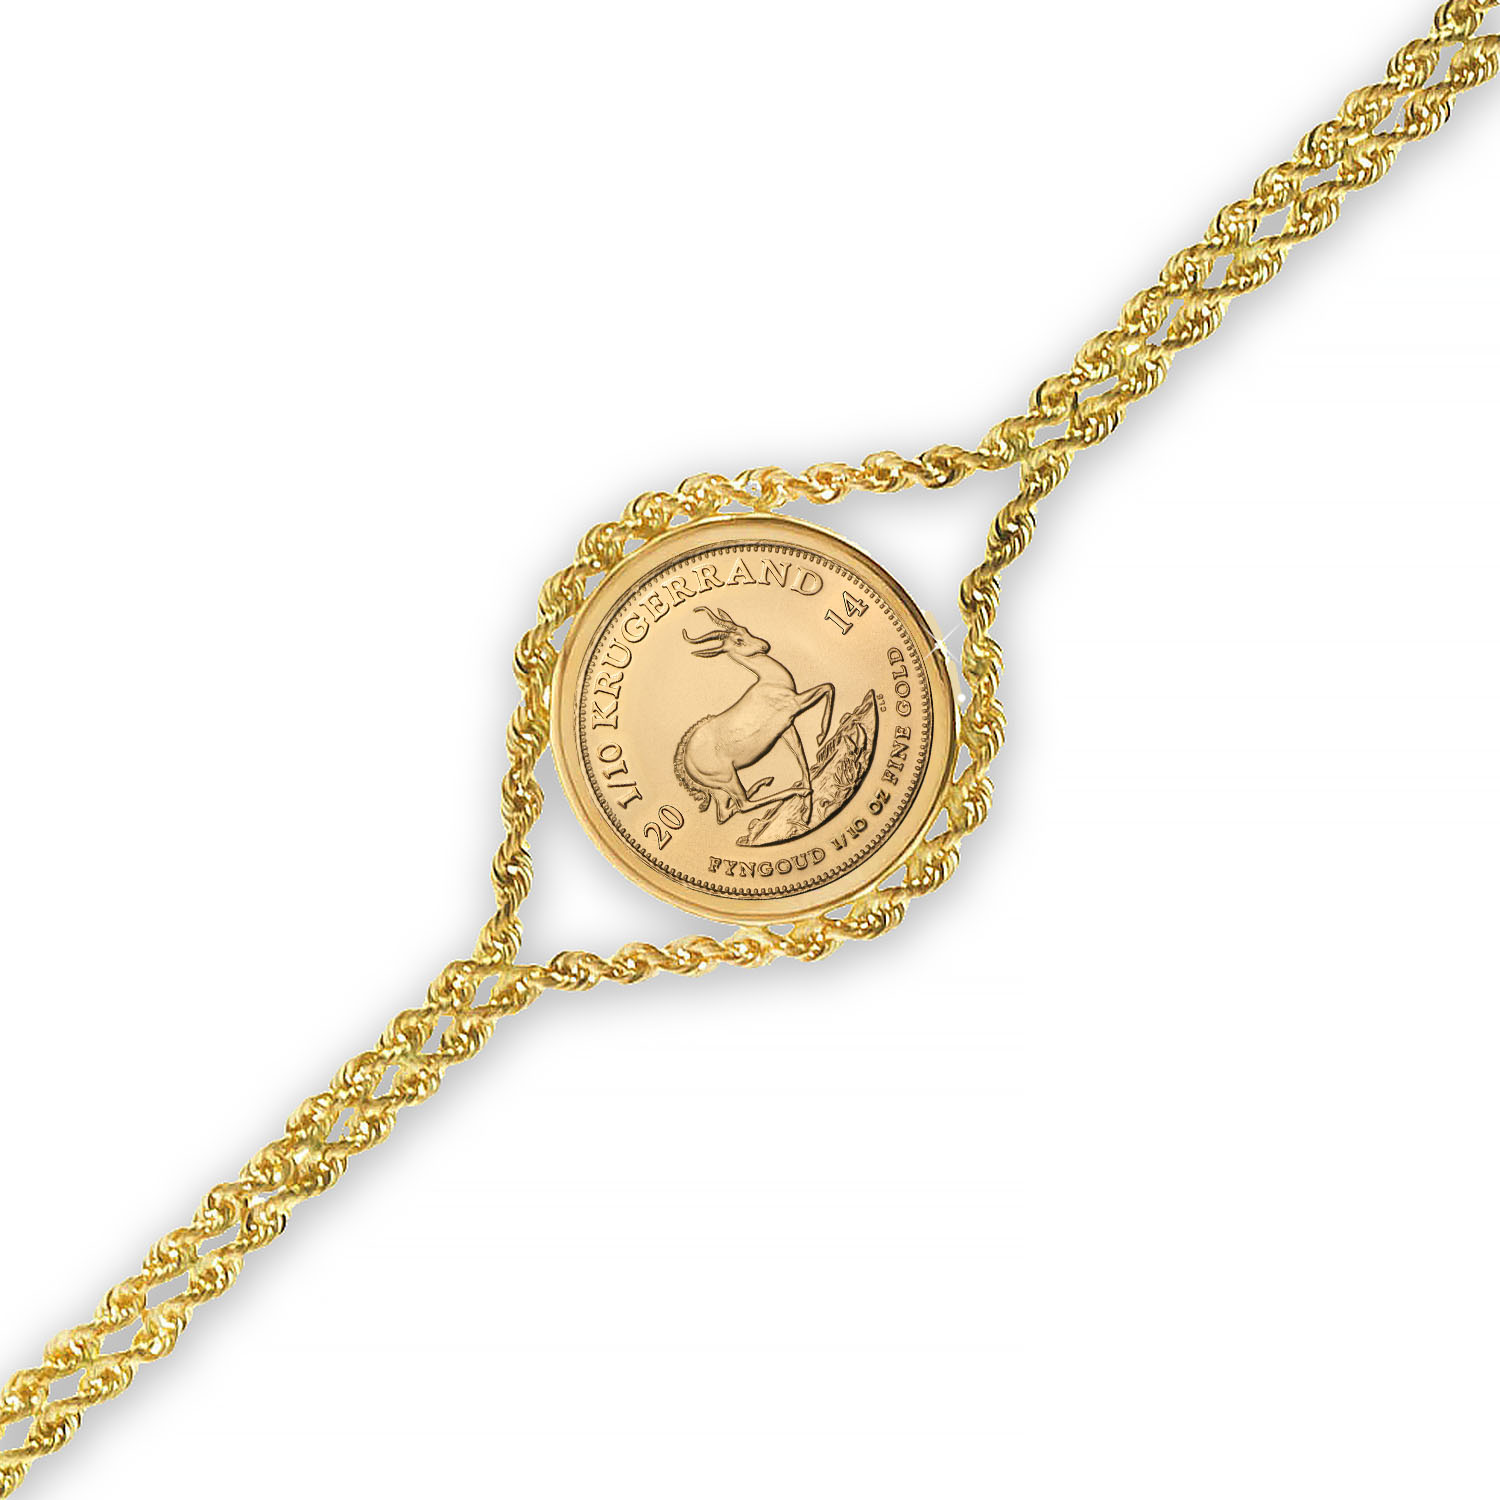 2014 1/10 oz Gold Krugerrand Bracelet (Polished Rope)